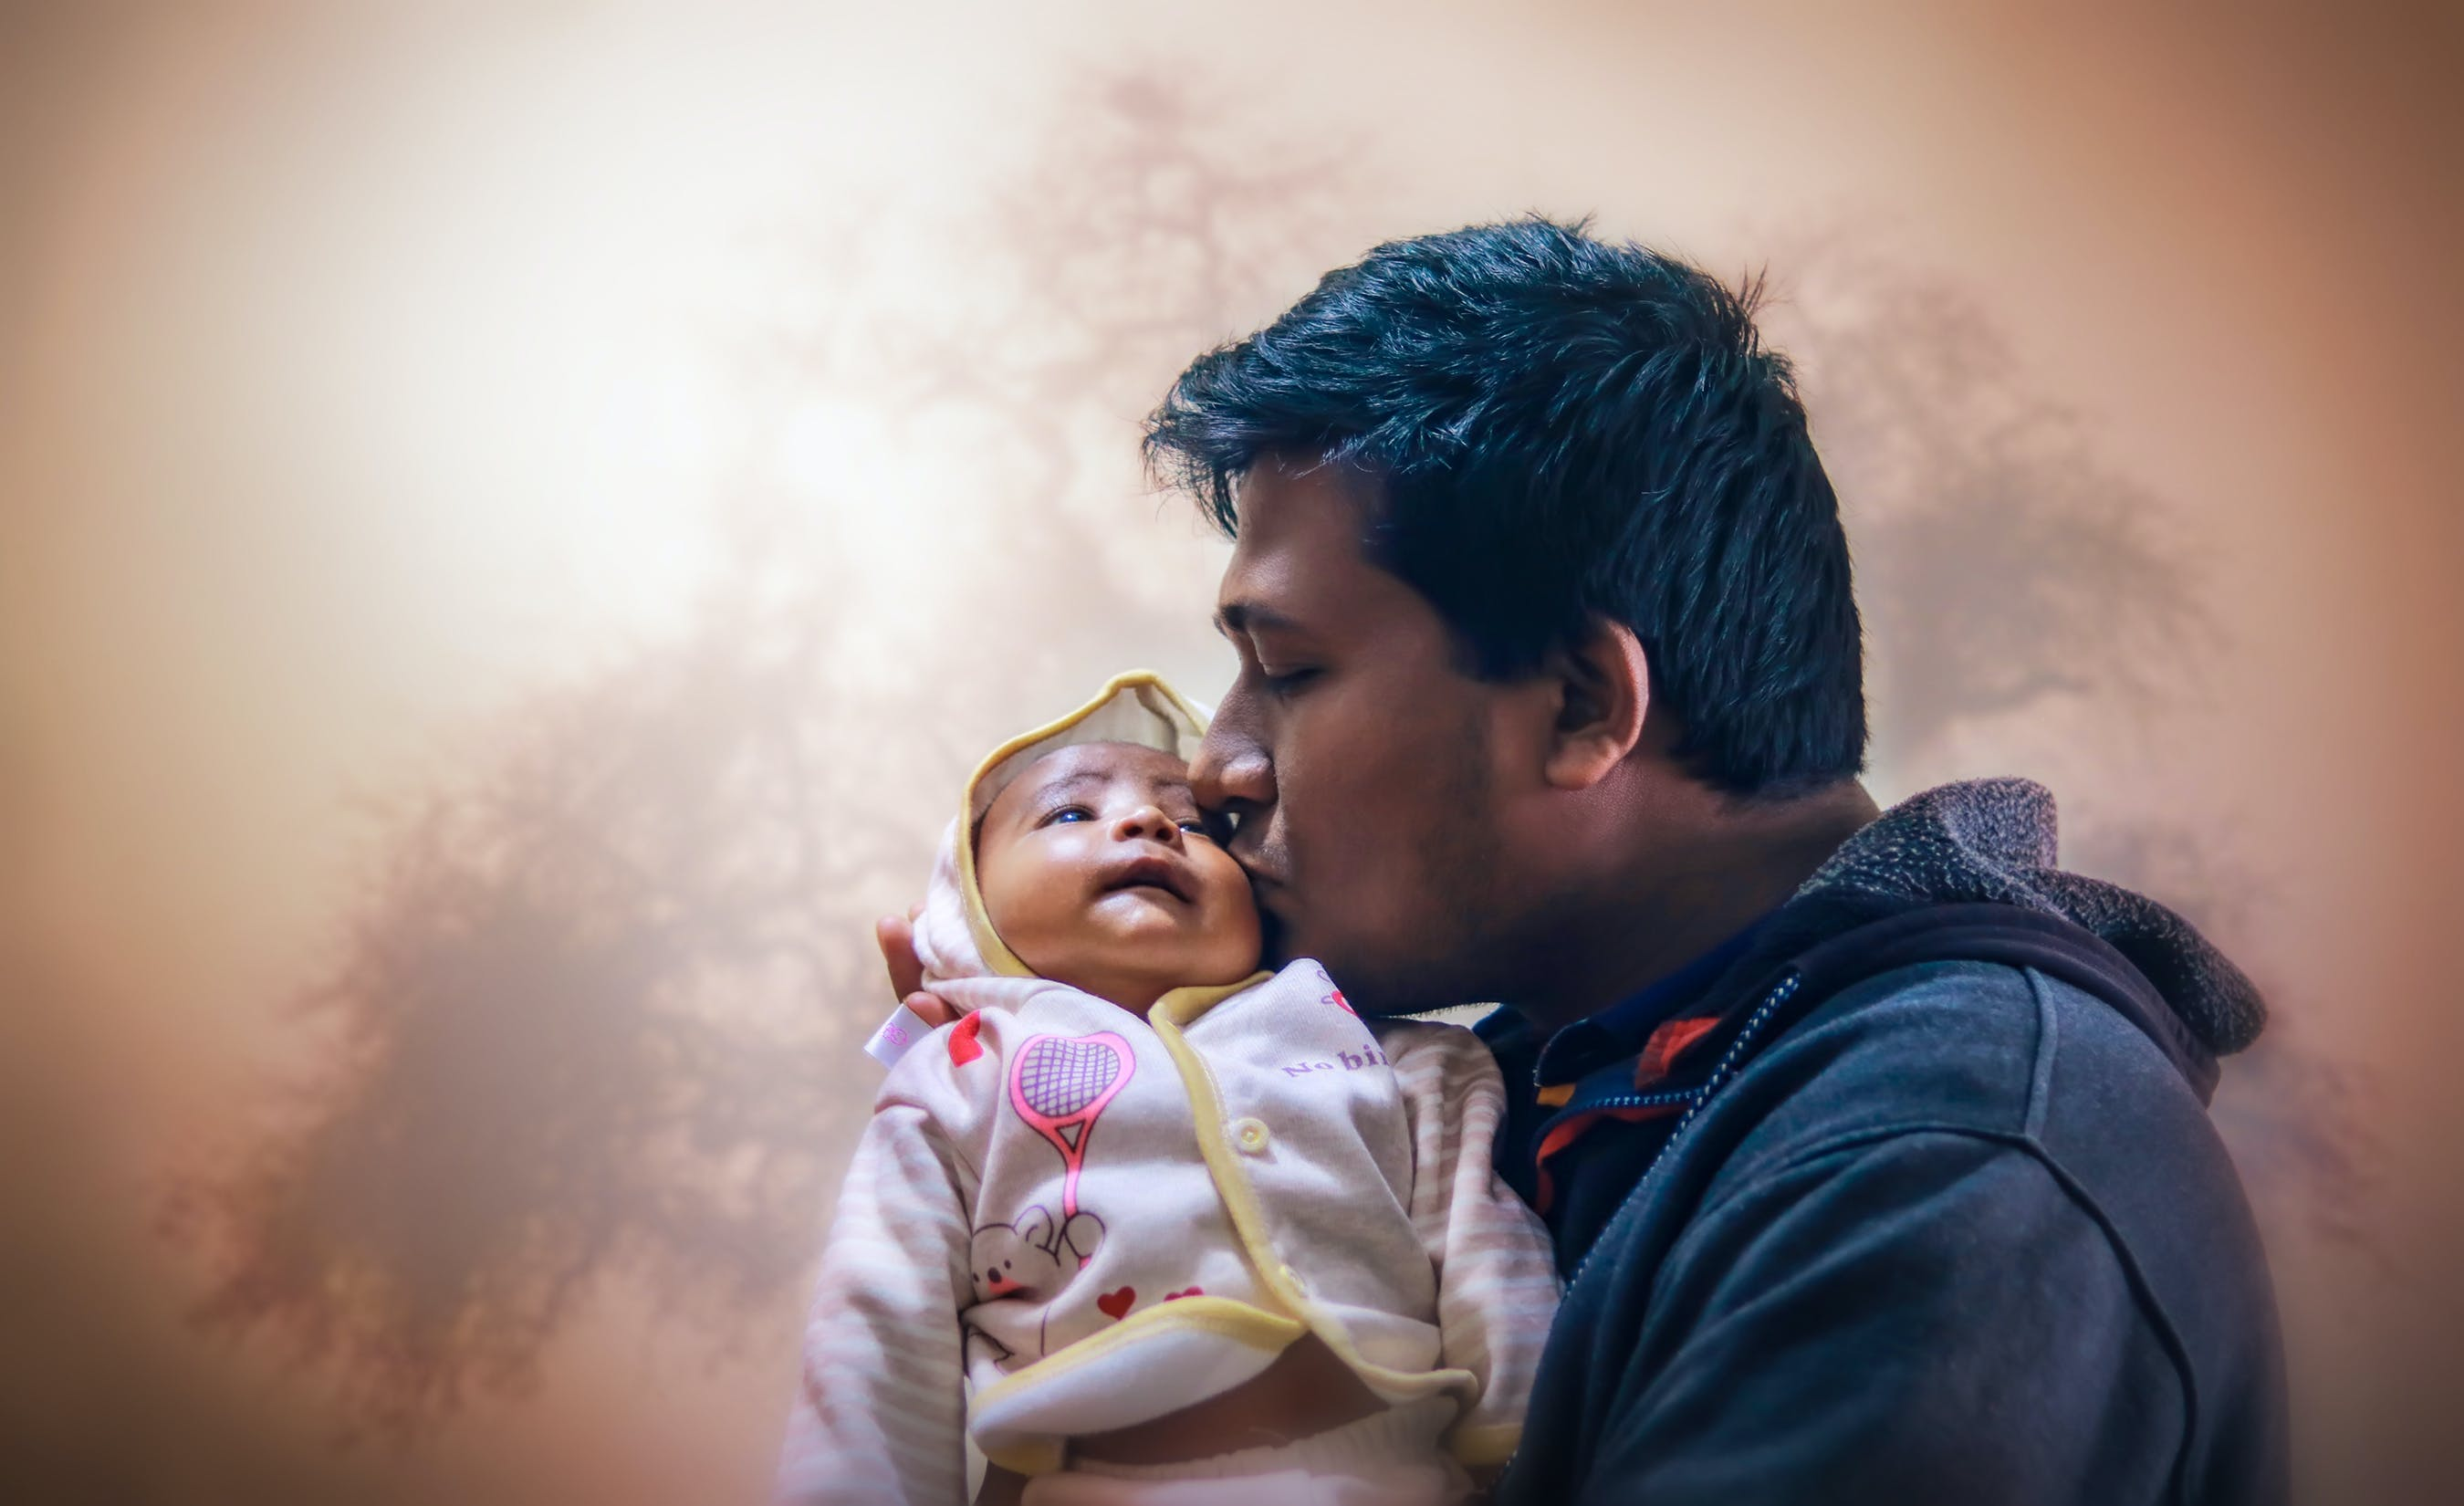 Free stock photo of baby, blur, cute, dad